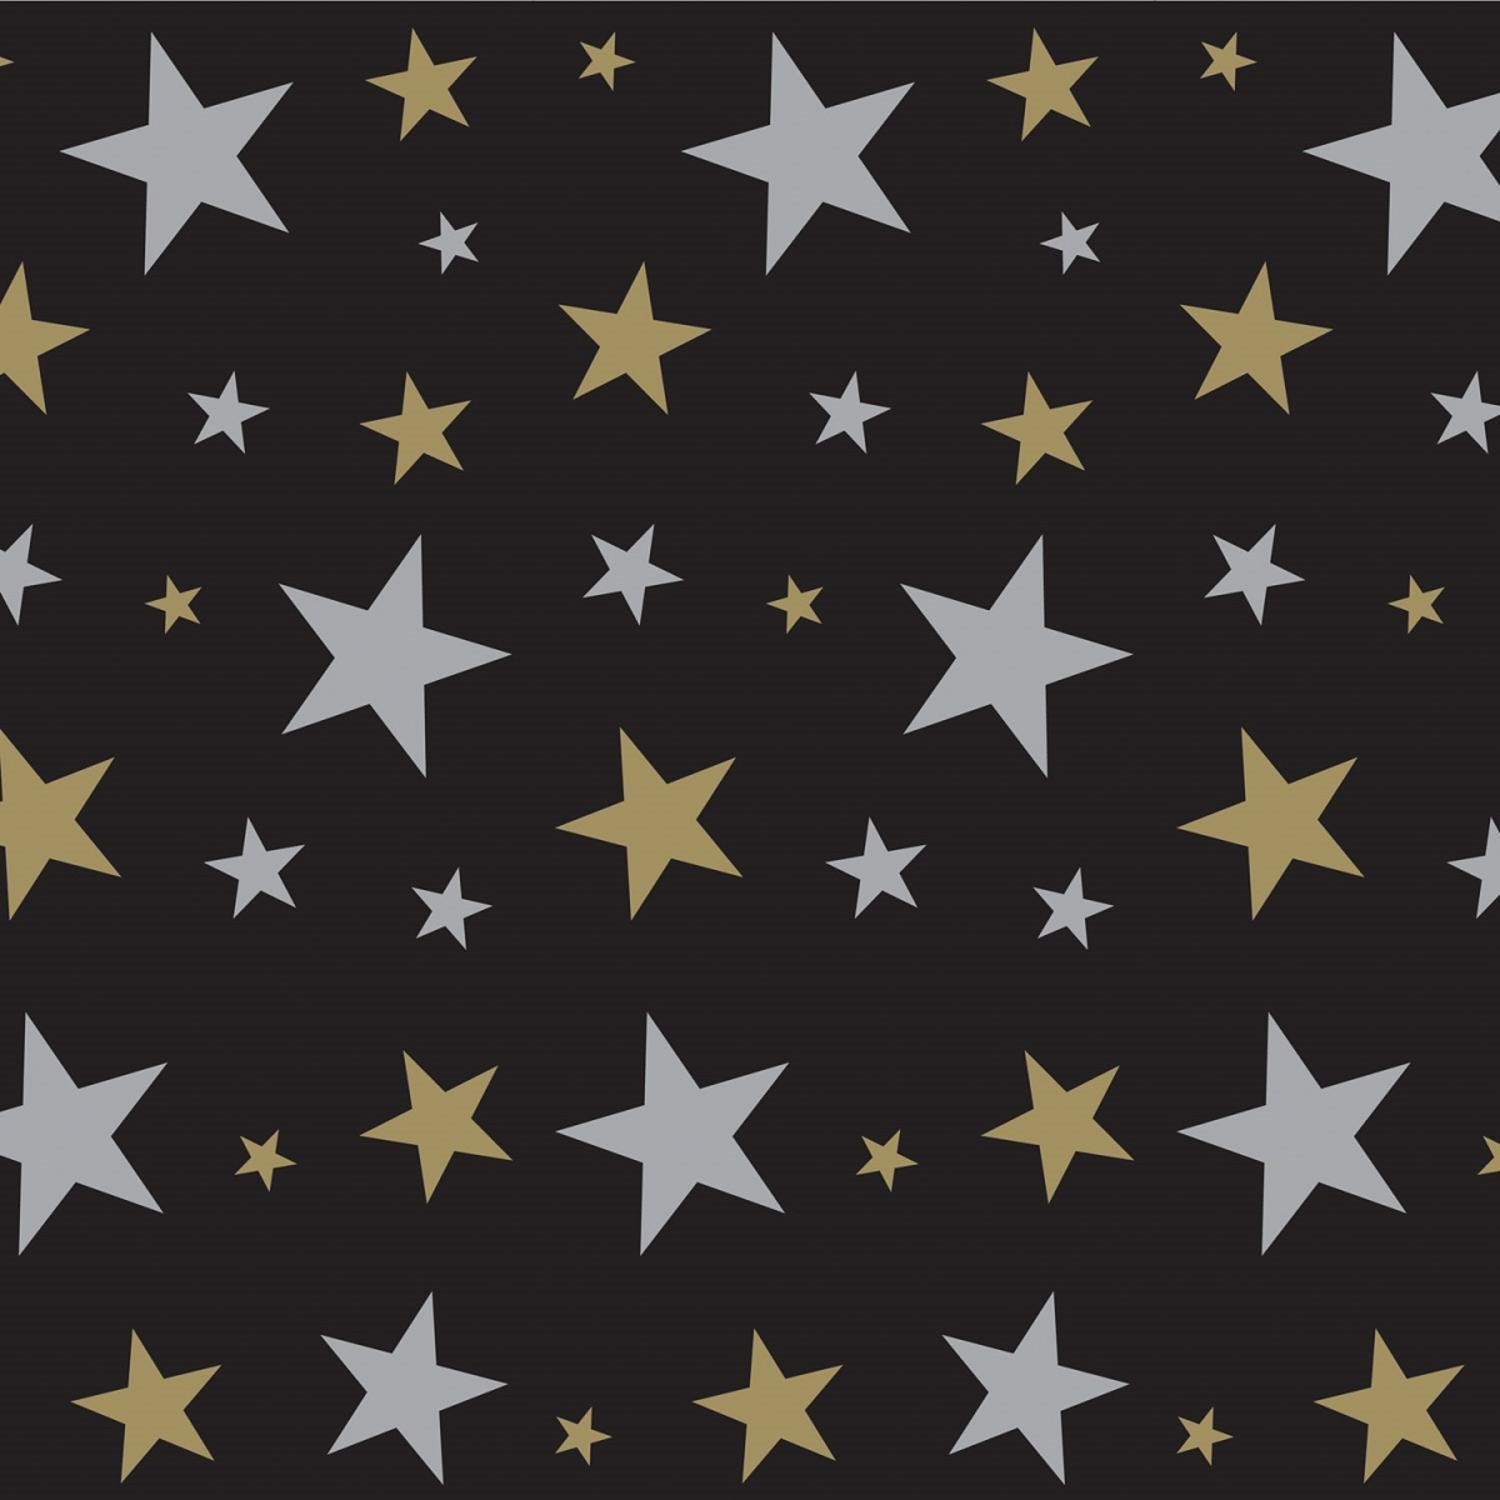 Pack of 6 Jet Black with Gold and Silver Stars Celebration Photo Backdrop